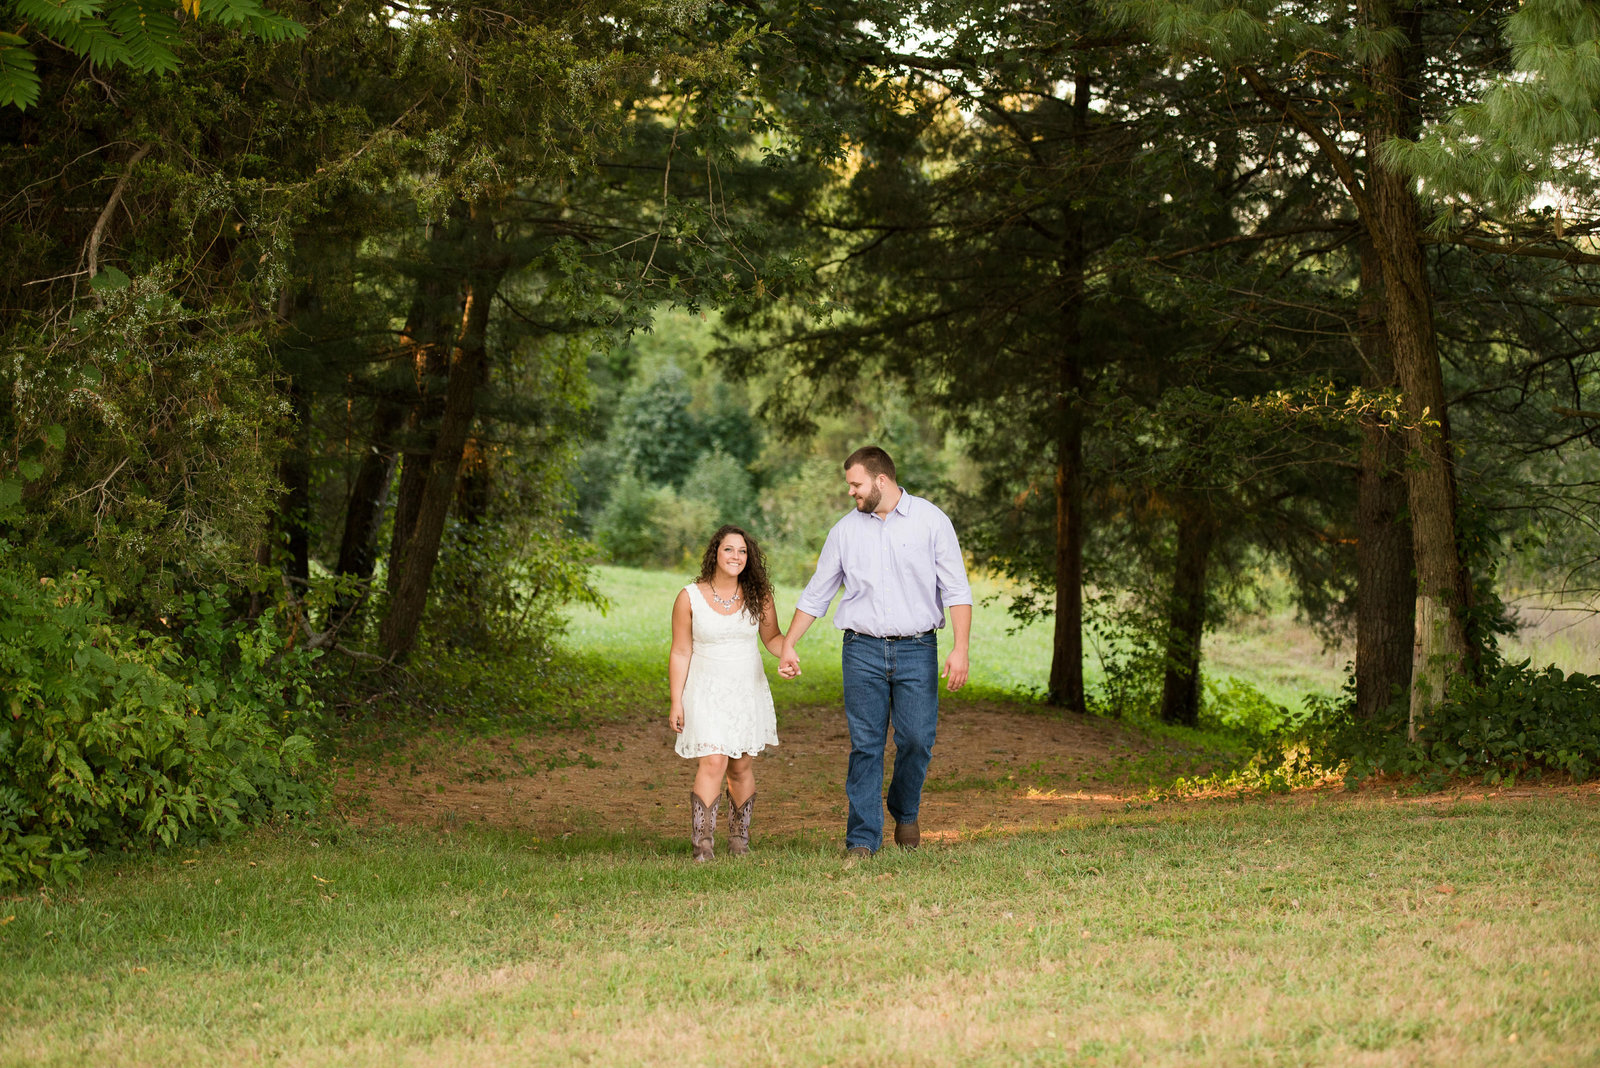 NJ_Rustic_Engagement_Photography130